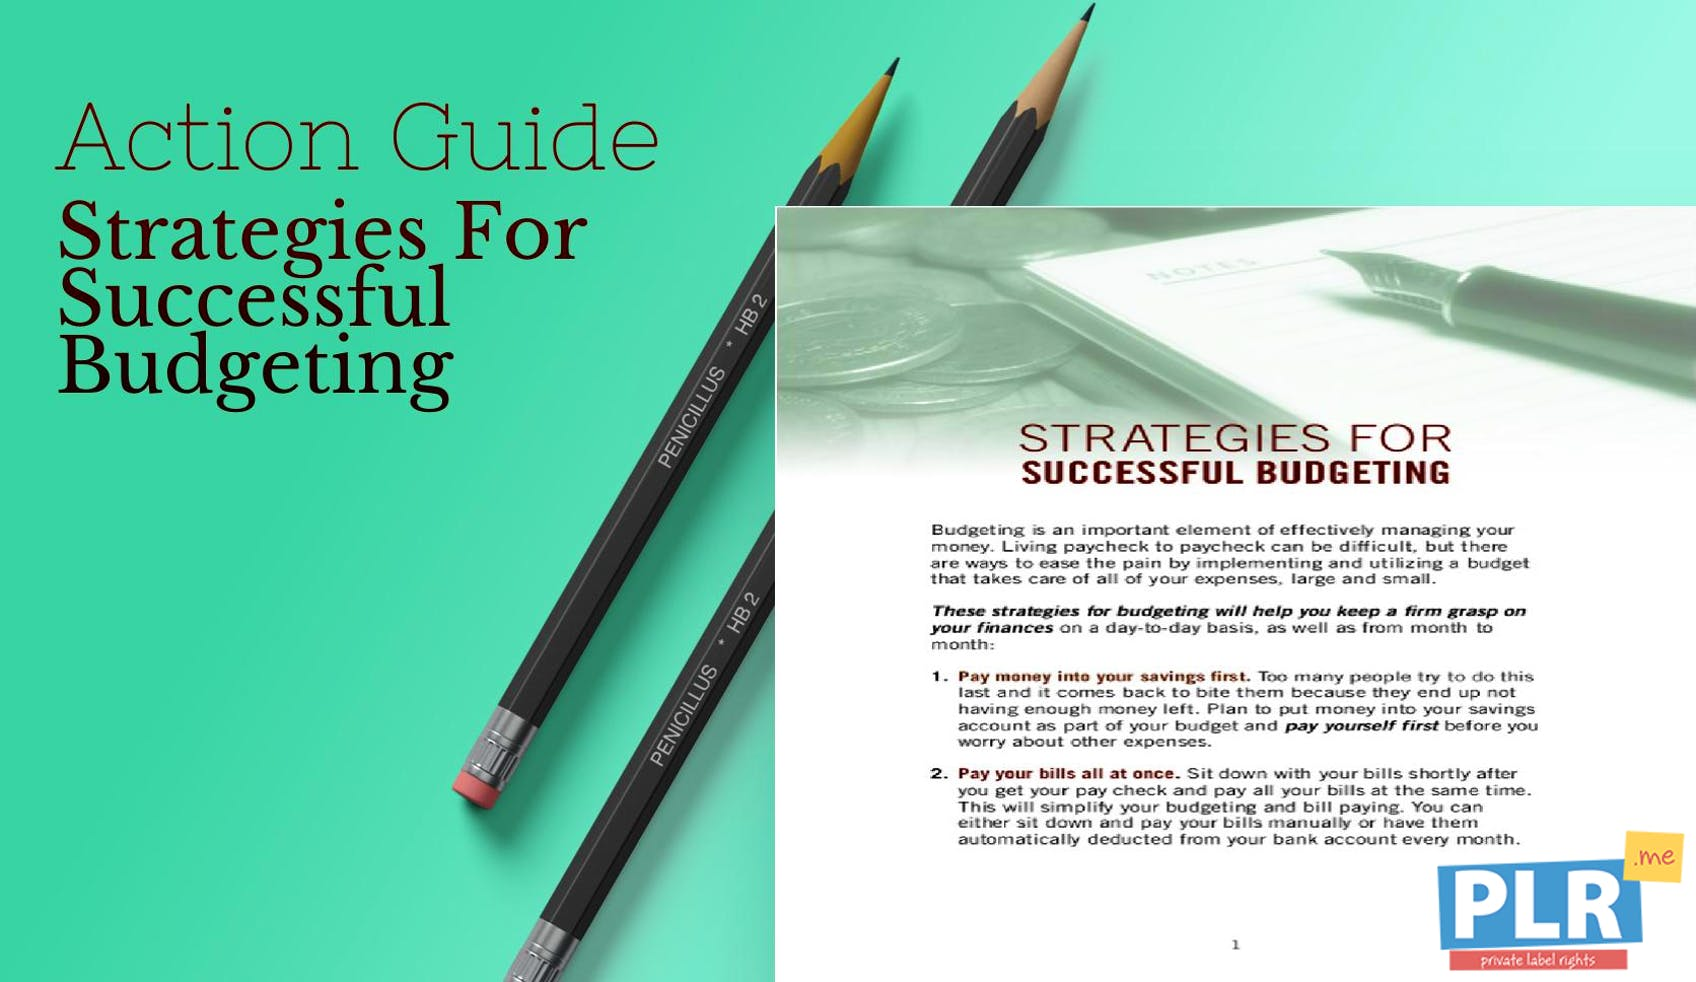 Strategies For Successful Budgeting